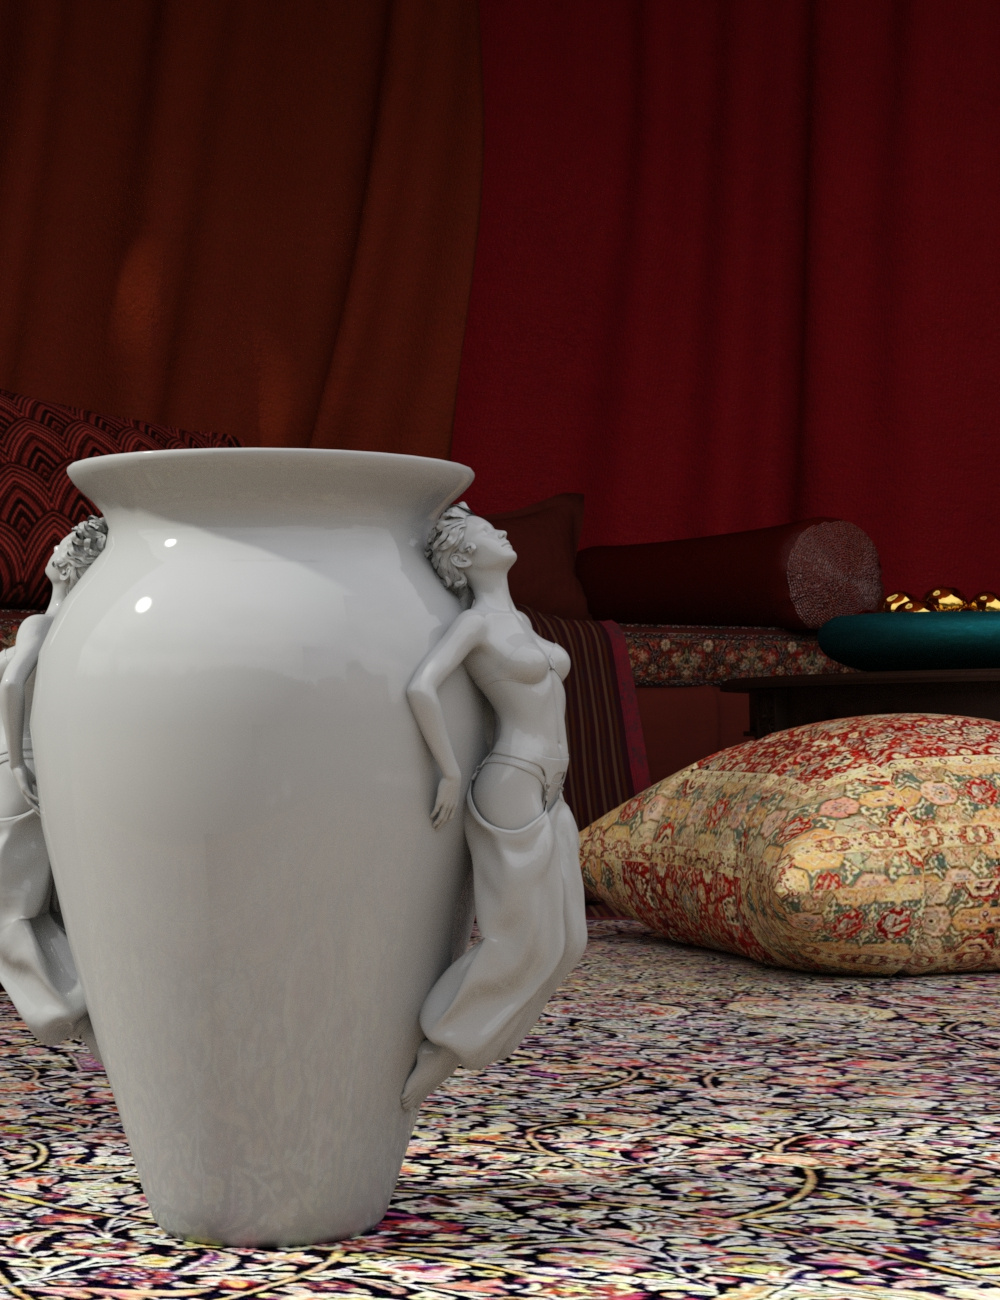 Ceramics for Iray by: Khory, 3D Models by Daz 3D